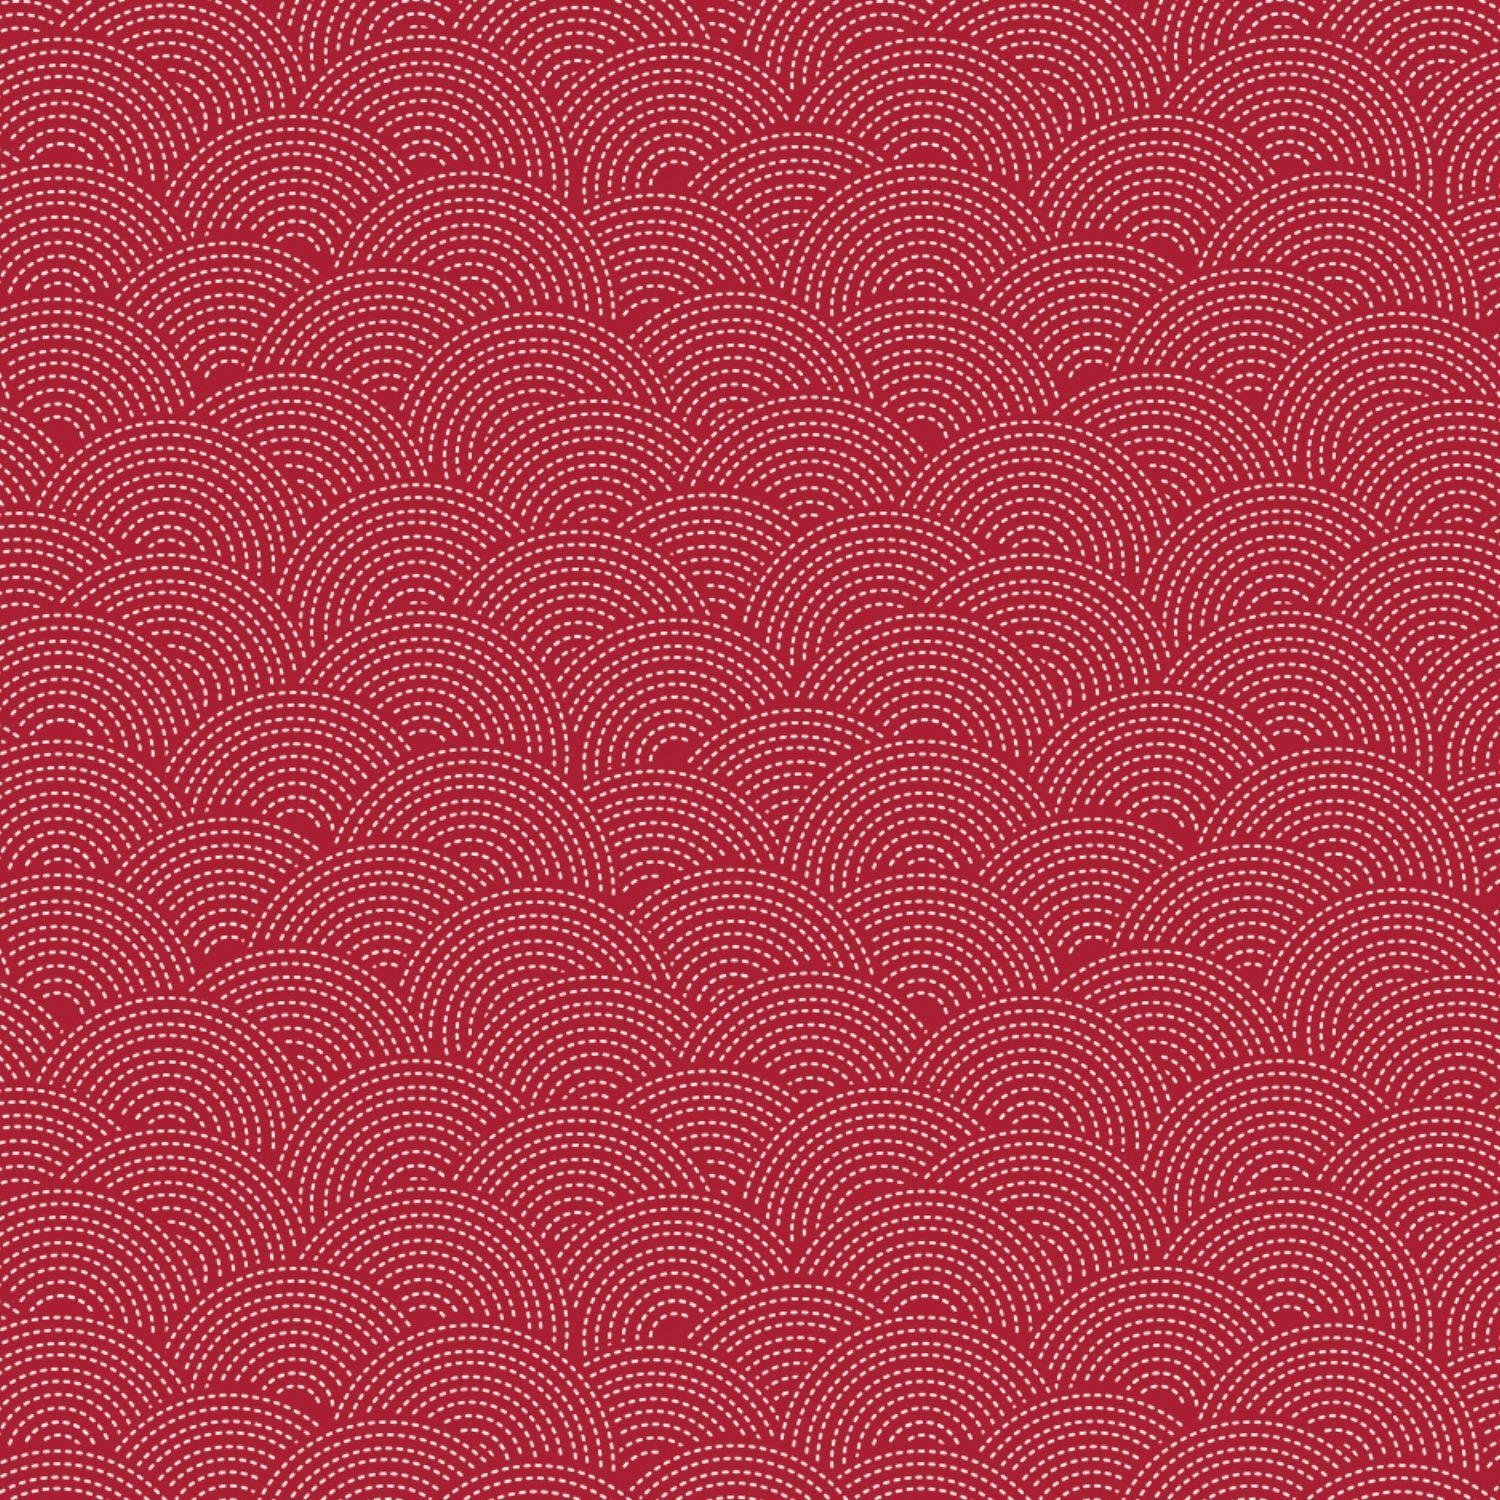 Mixology - Sashiko CRIMSON